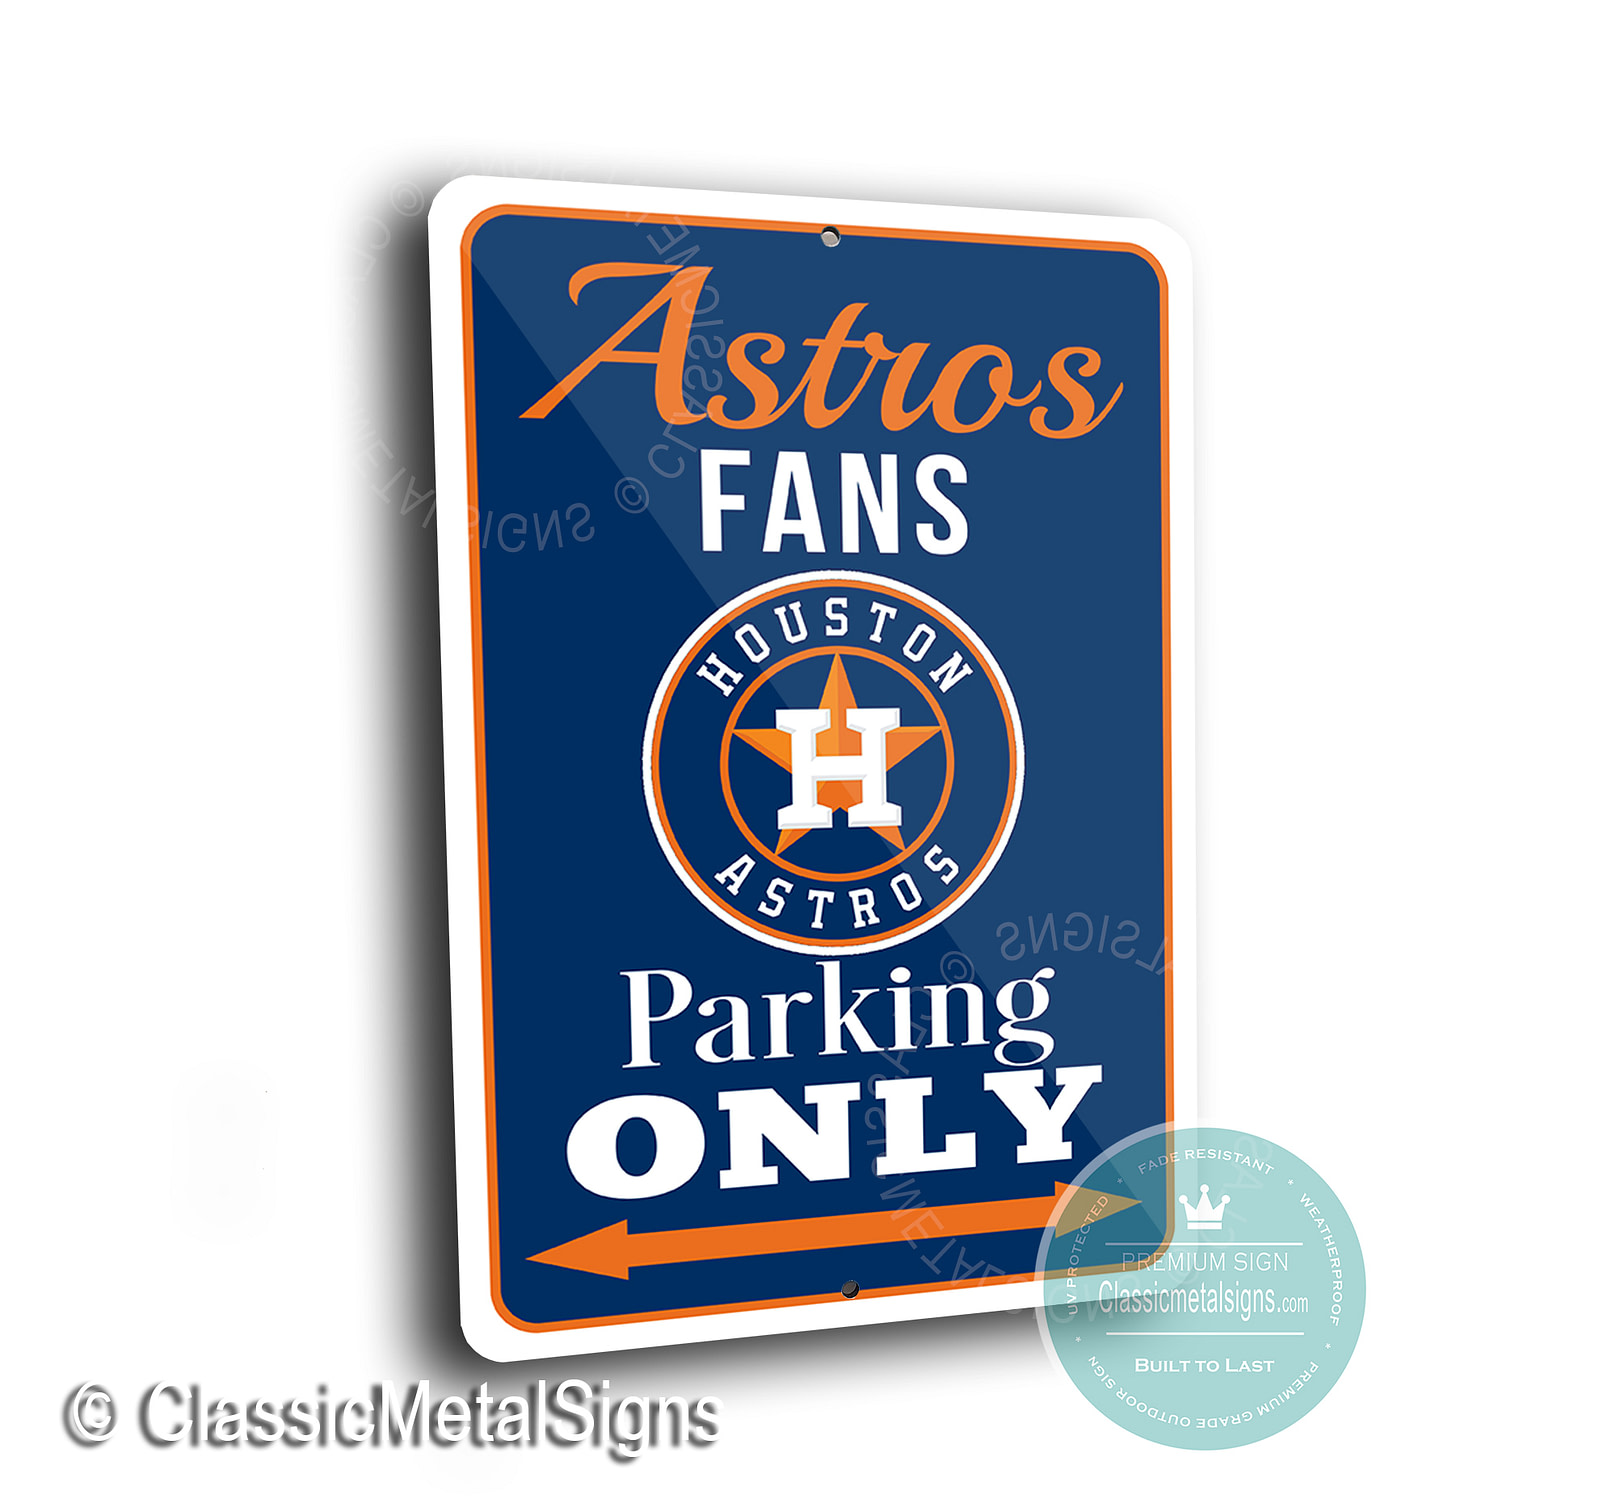 Astros Parking Only Signs